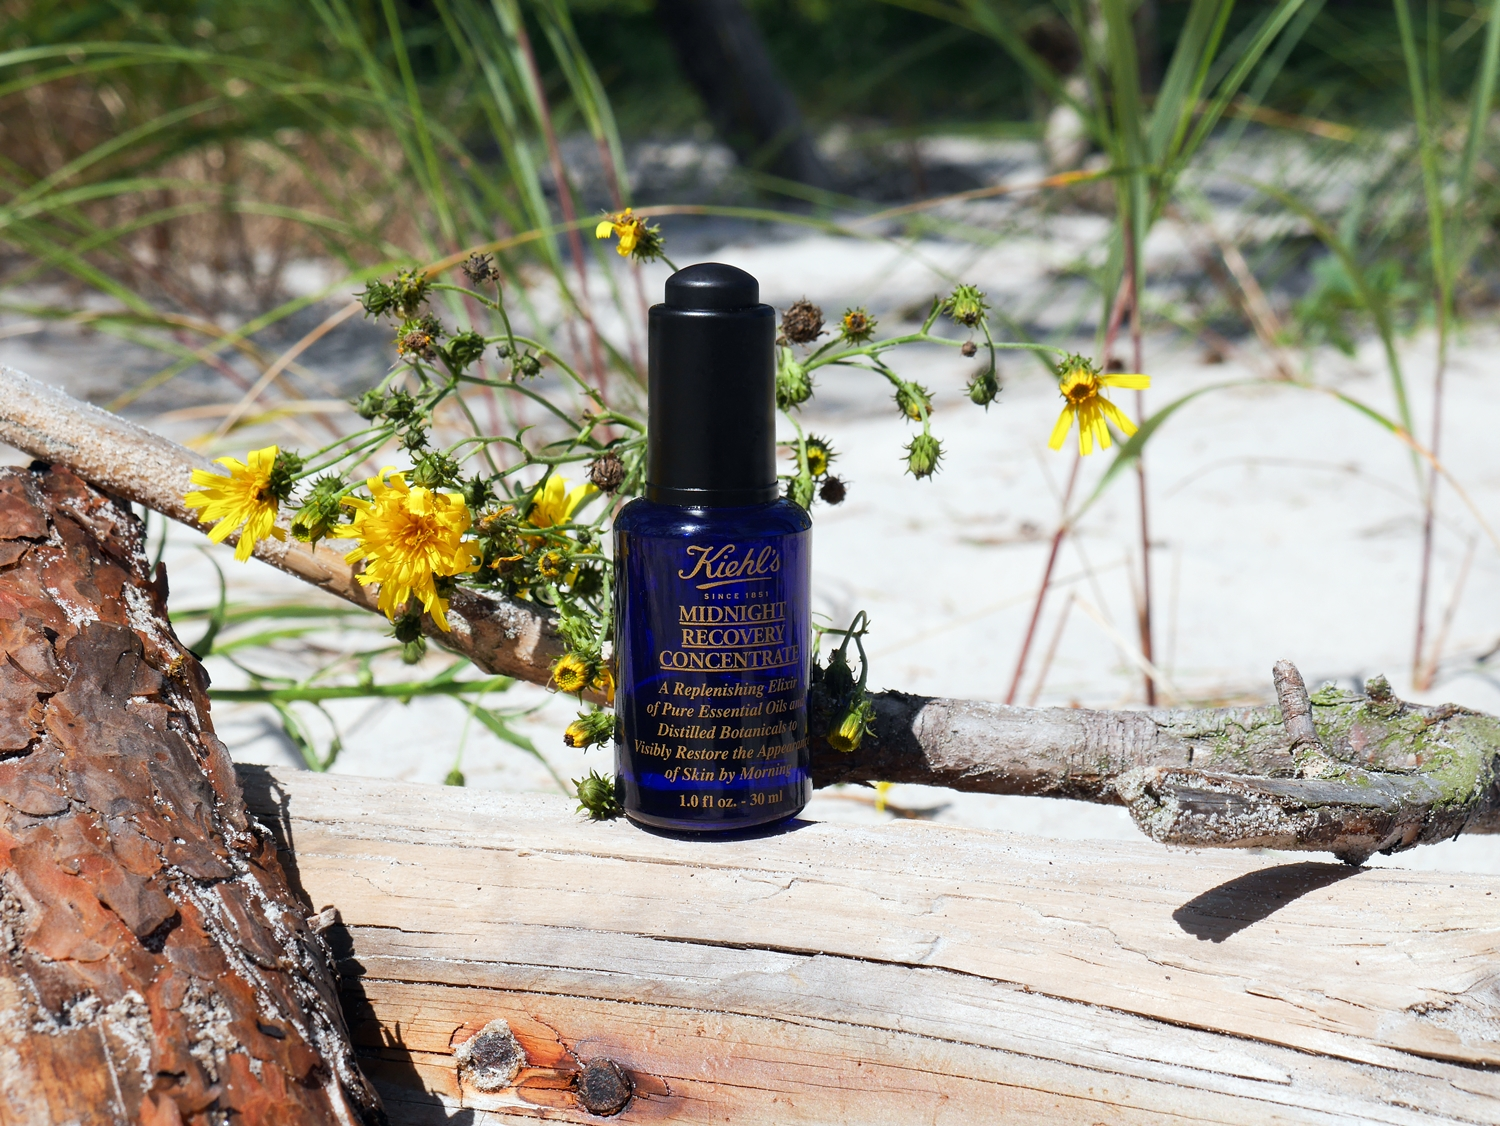 Kultowy kosmetyk | Kiehl's Midnight Recovery Concentrate